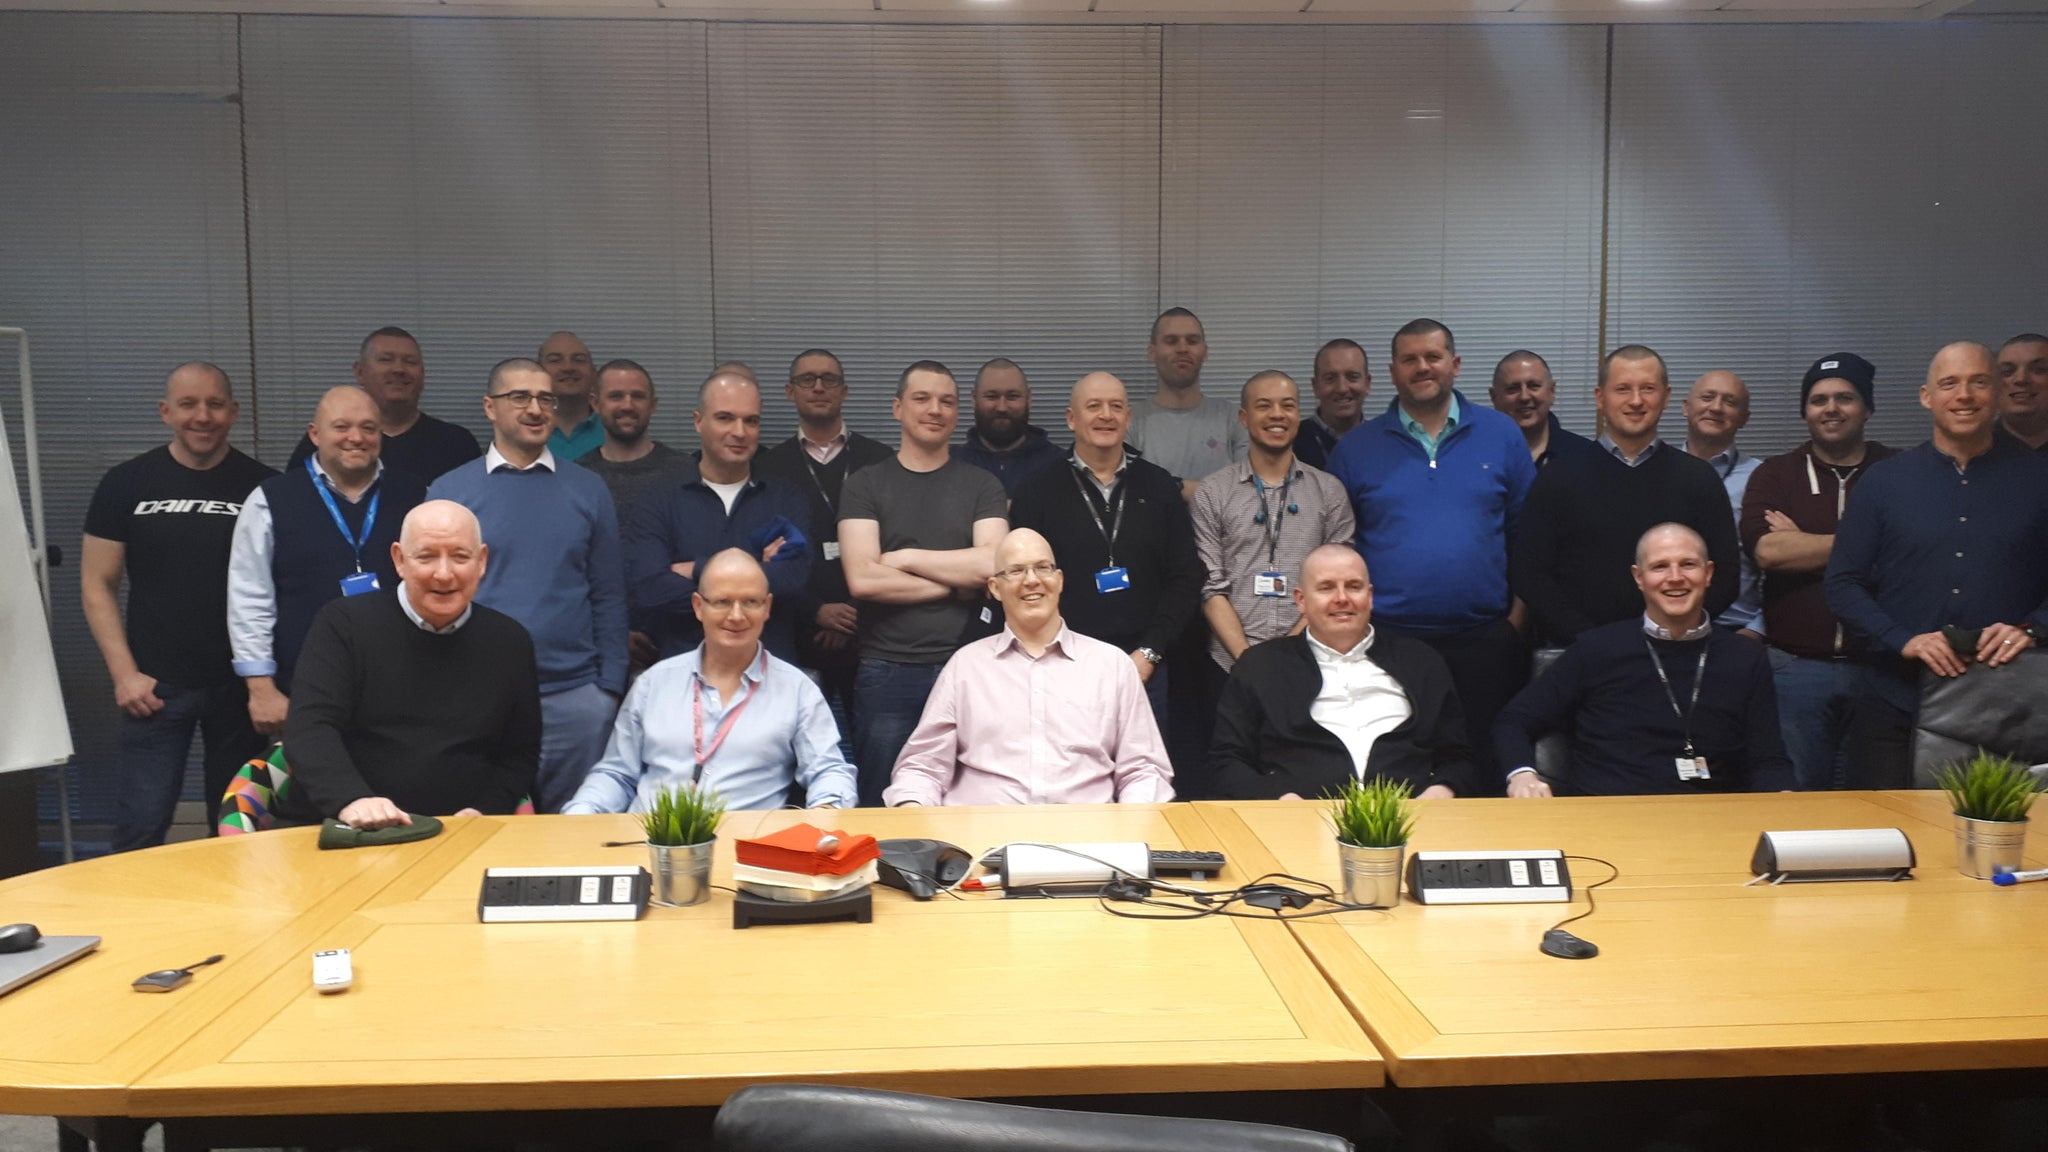 Cubic Telecom Team After Shaving Head for CFO Dave